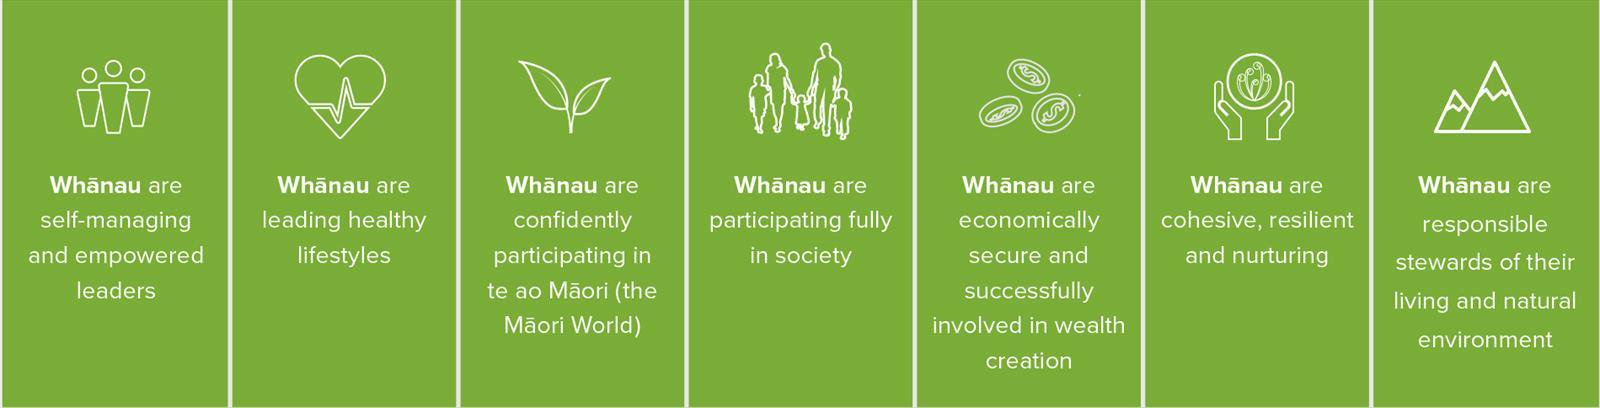 Whānau are self-managing & empowered leaders. Whānau are leading healthy lifestyles. Whānau are confidently participating in Te Ao Māori. Whānau are participating fully in society. Whānau are economically secure & successfully involved in wealth creation. Whānau are cohesive, resilient & nurturing. Whānau are responsible stewards of their living & natural environment.